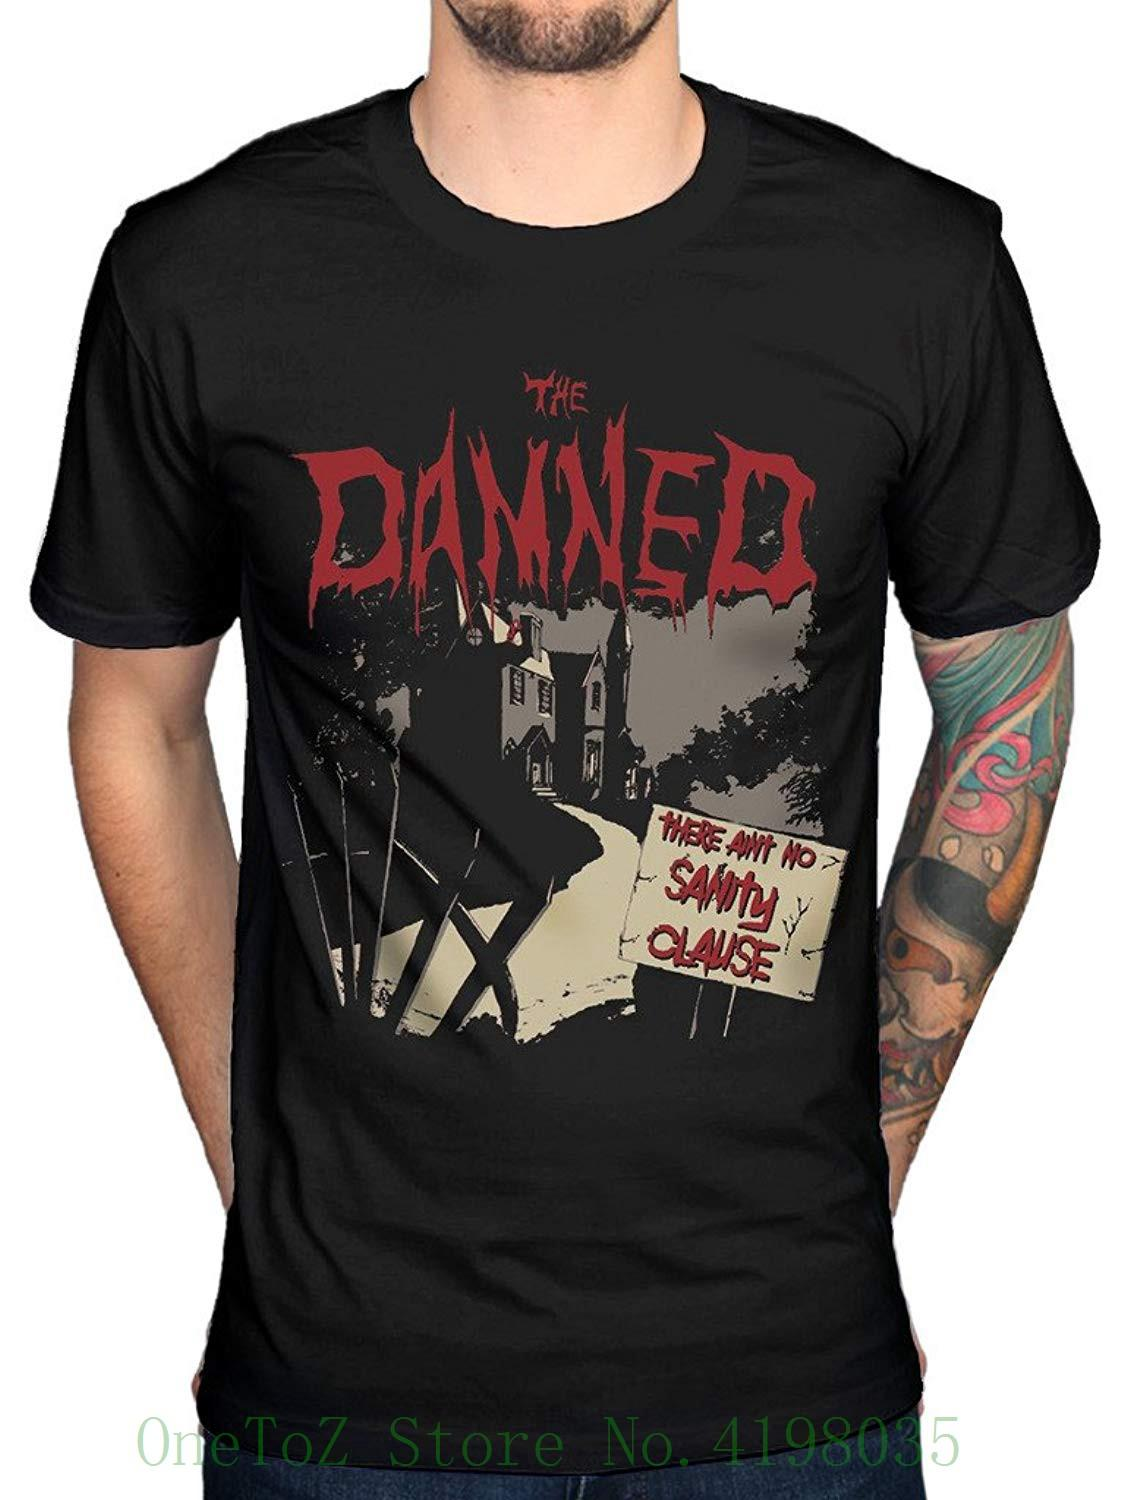 b79d491f Official The Damned Aint No Sanity Clause T Shirt Grave Disorder 100%  Cotton T Shirts For Man Great Tees Latest Designer T Shirts From  Onetozstore, ...